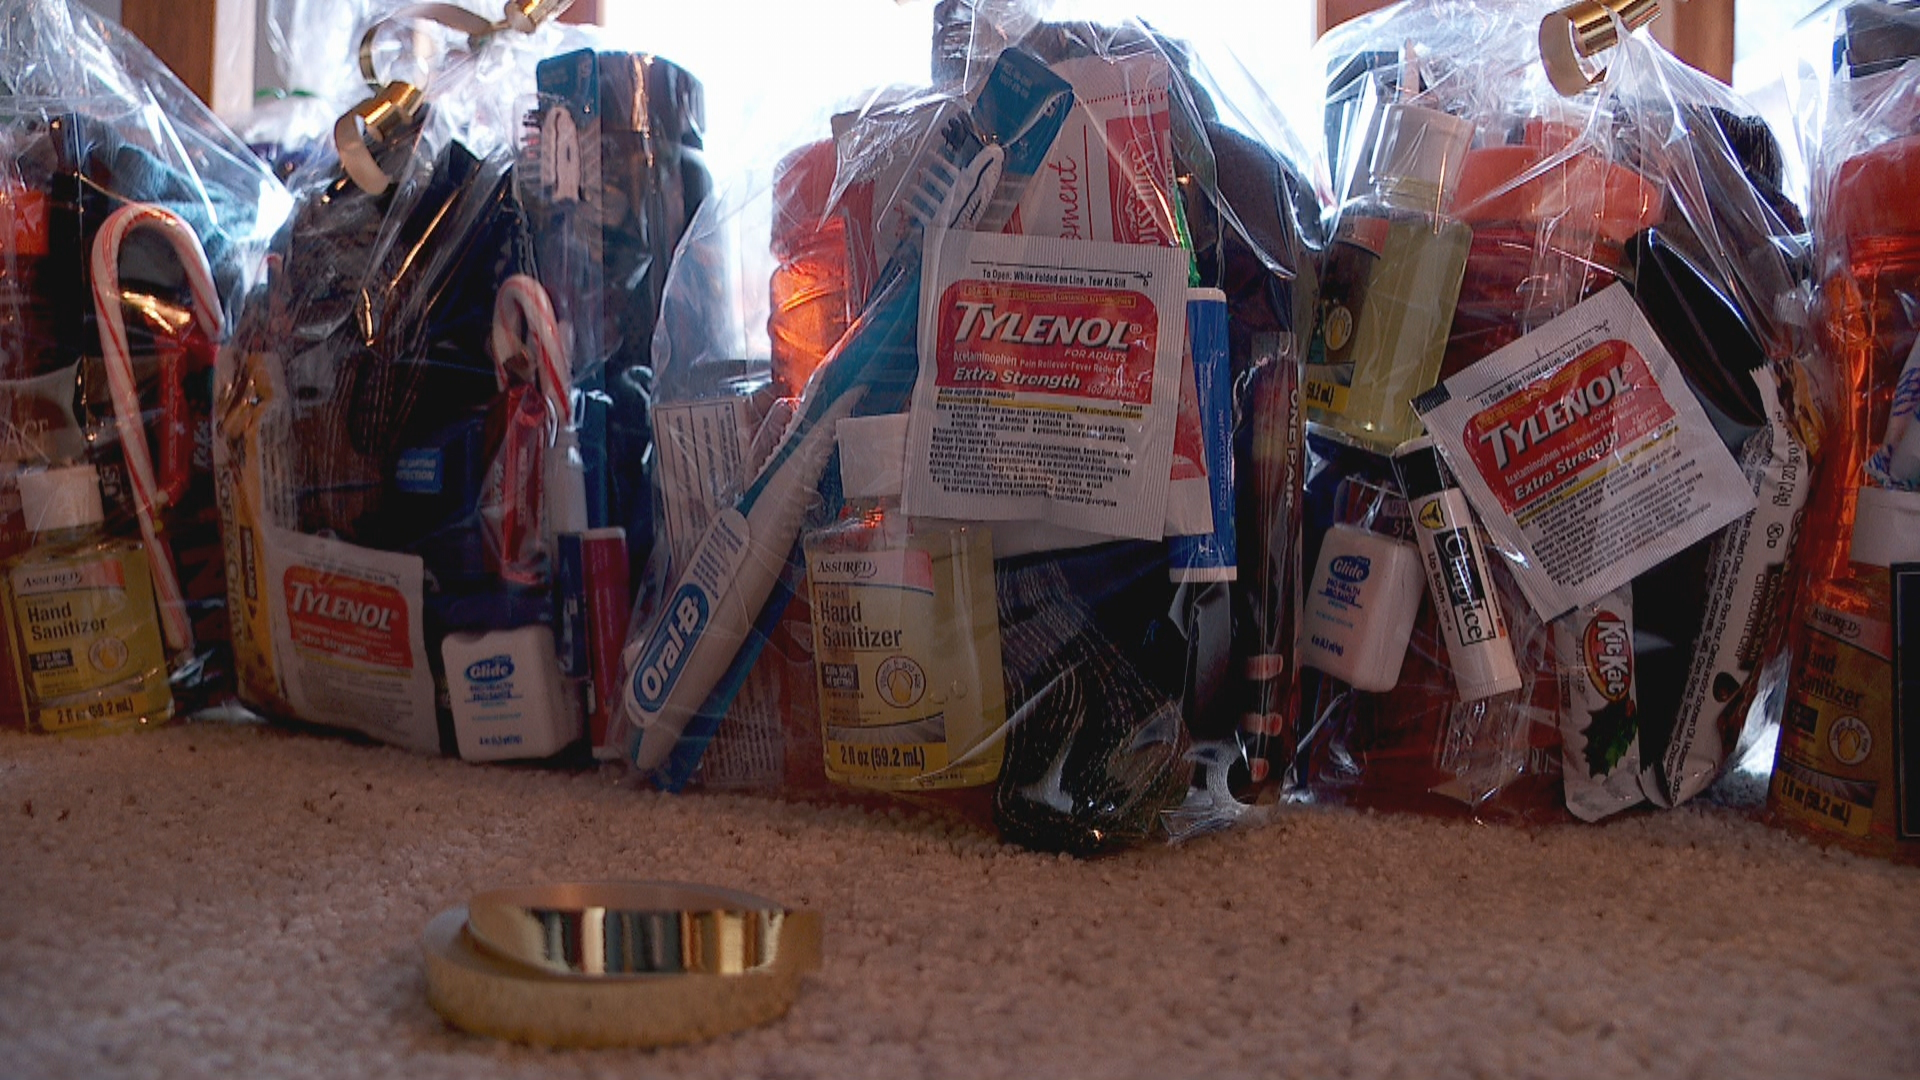 Pay it Forward: Teen gathers care packages for homeless youth (Photo: KUTV)